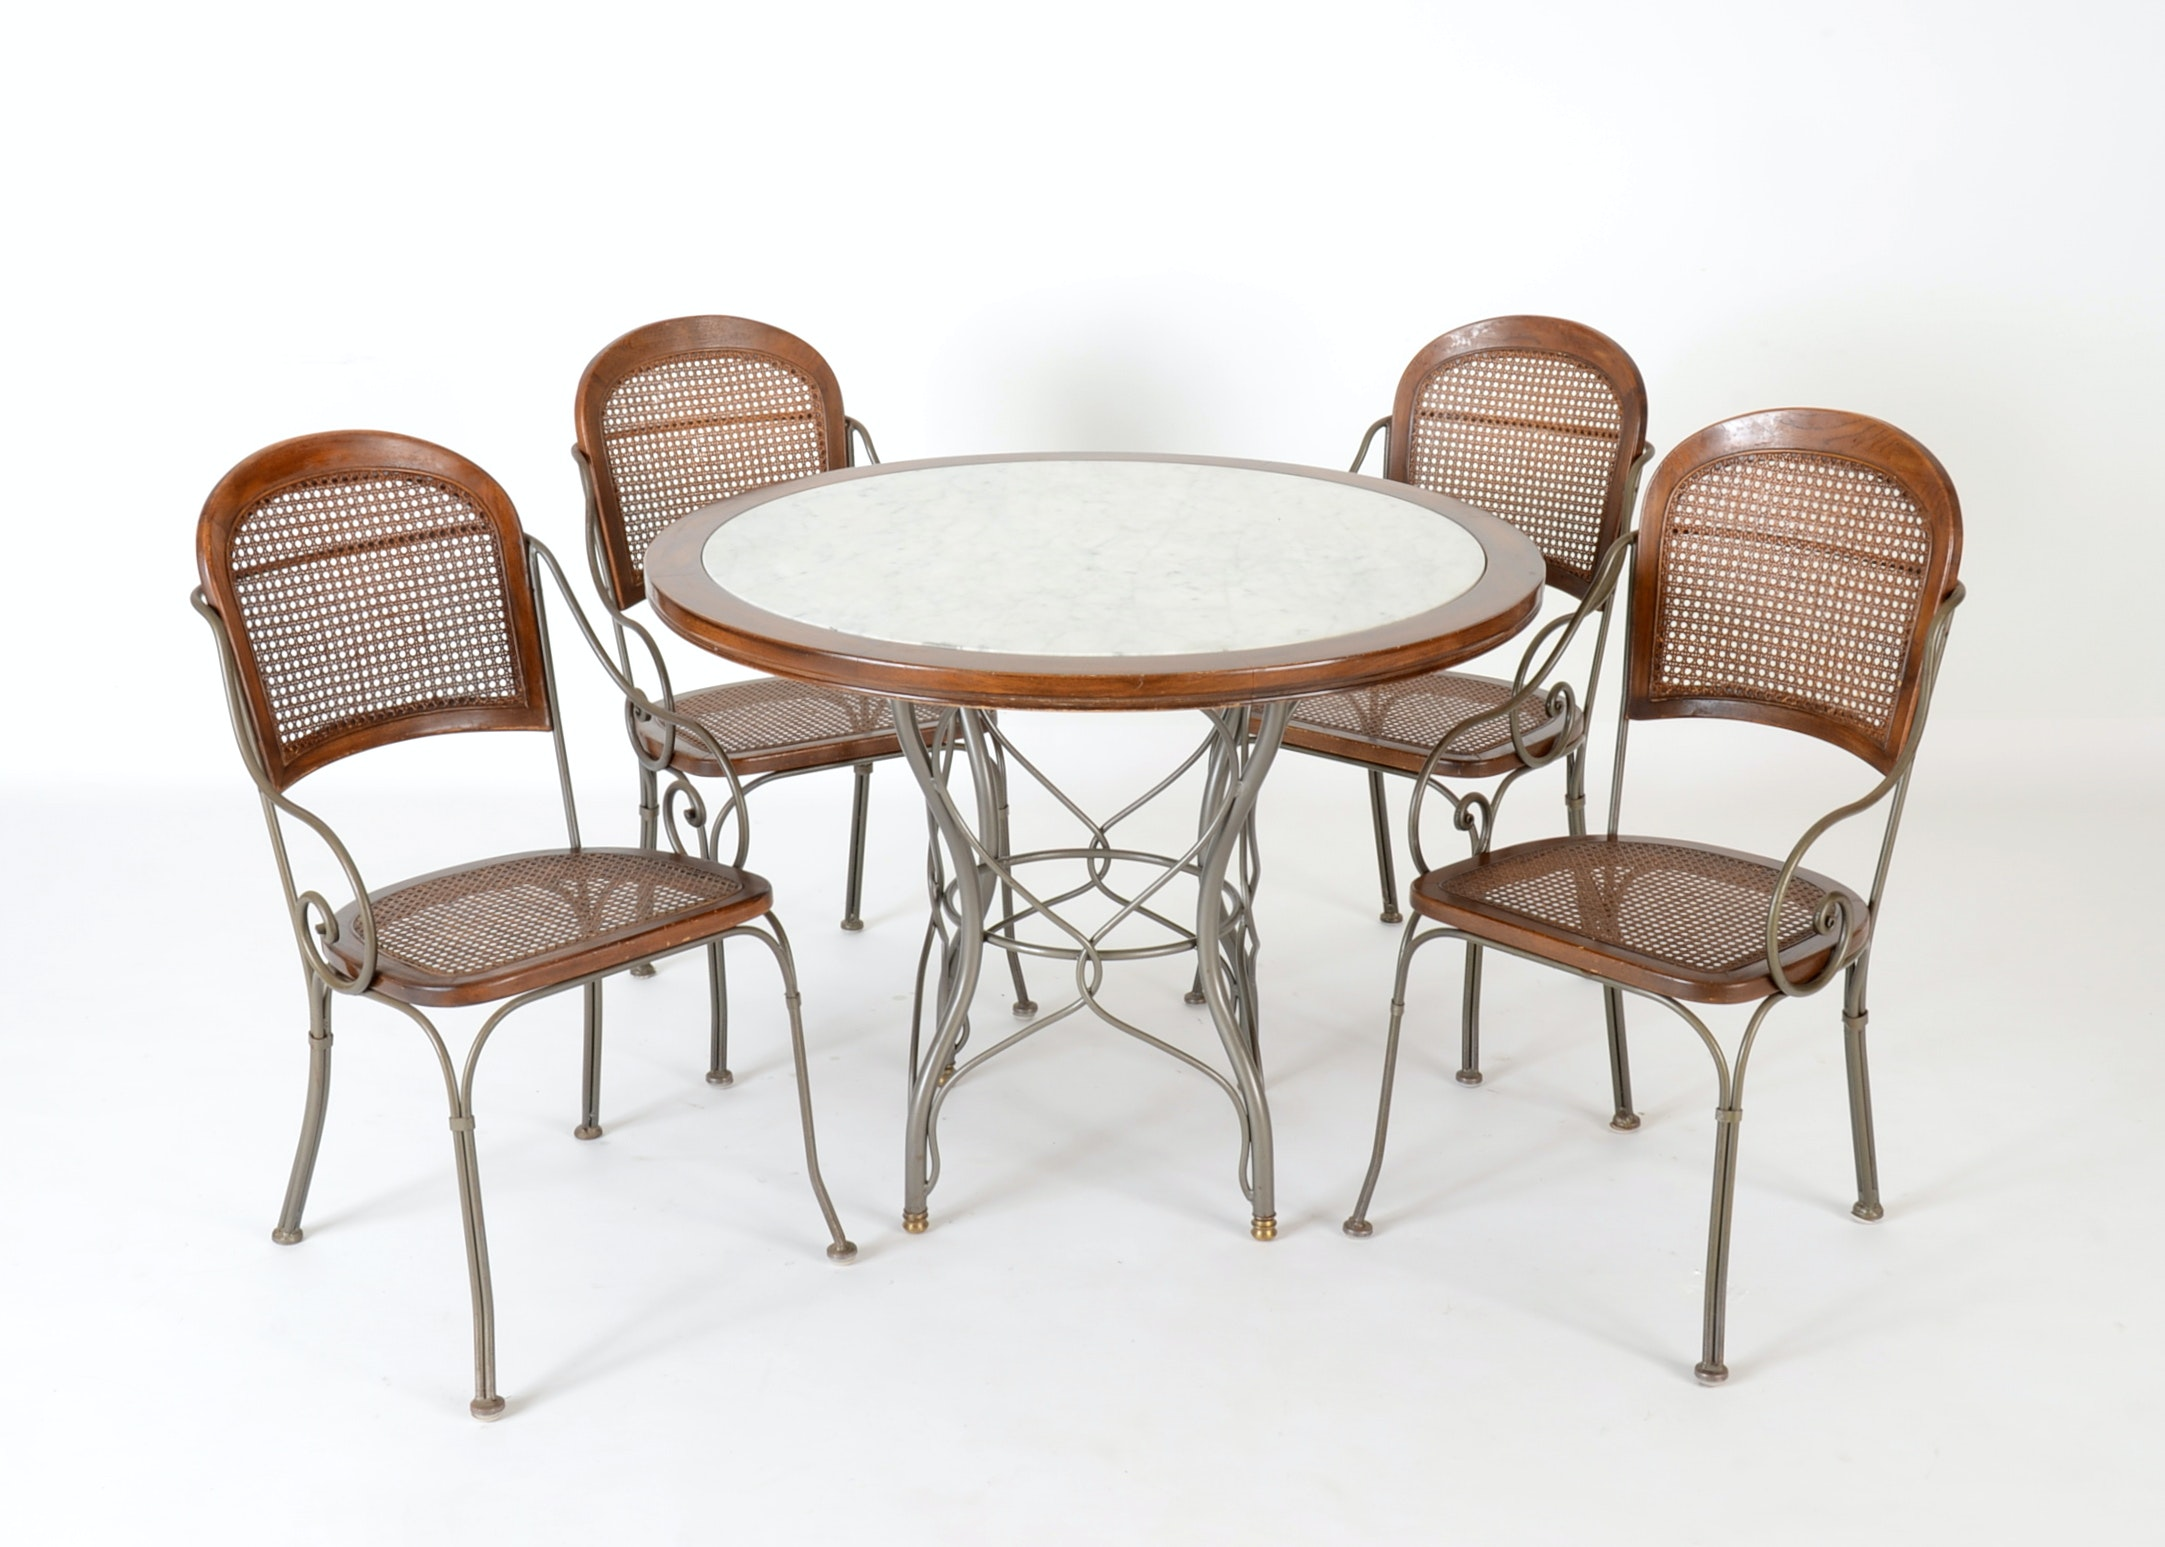 Drexel Heritage Furniture Marble Top Table And Four Chairs ...